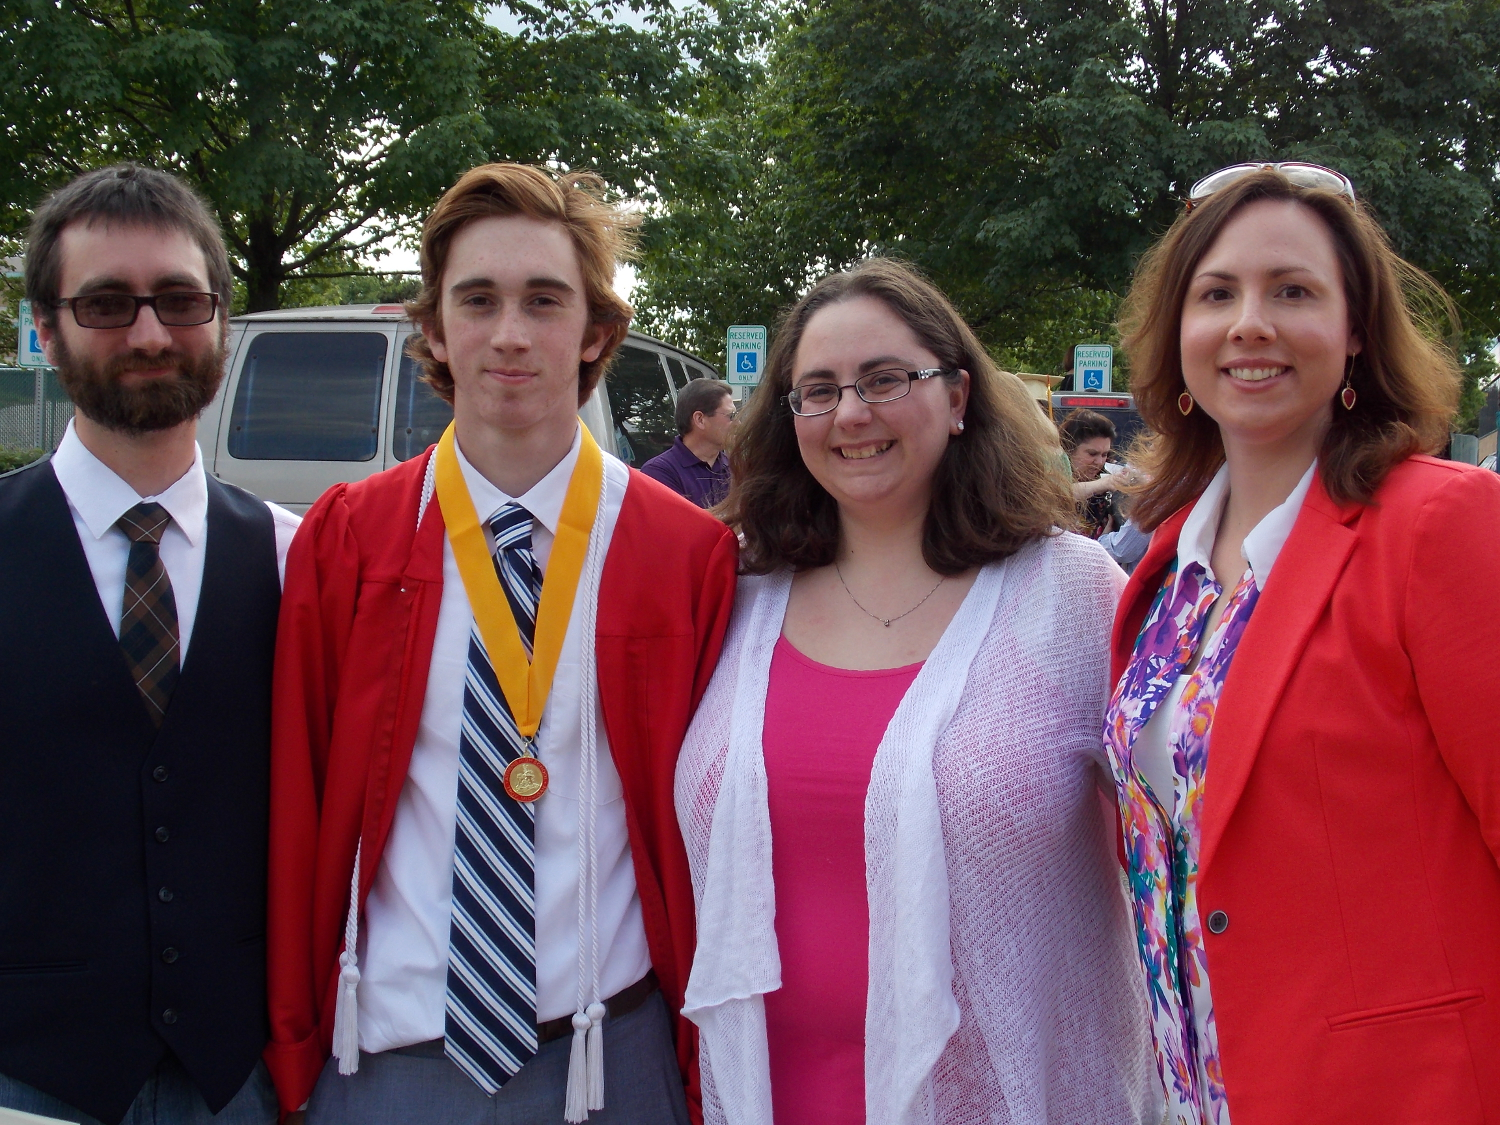 L to R: Bill (class of '02), Max (class of '13), Erin (class of '00), and Natalie (class of '00)